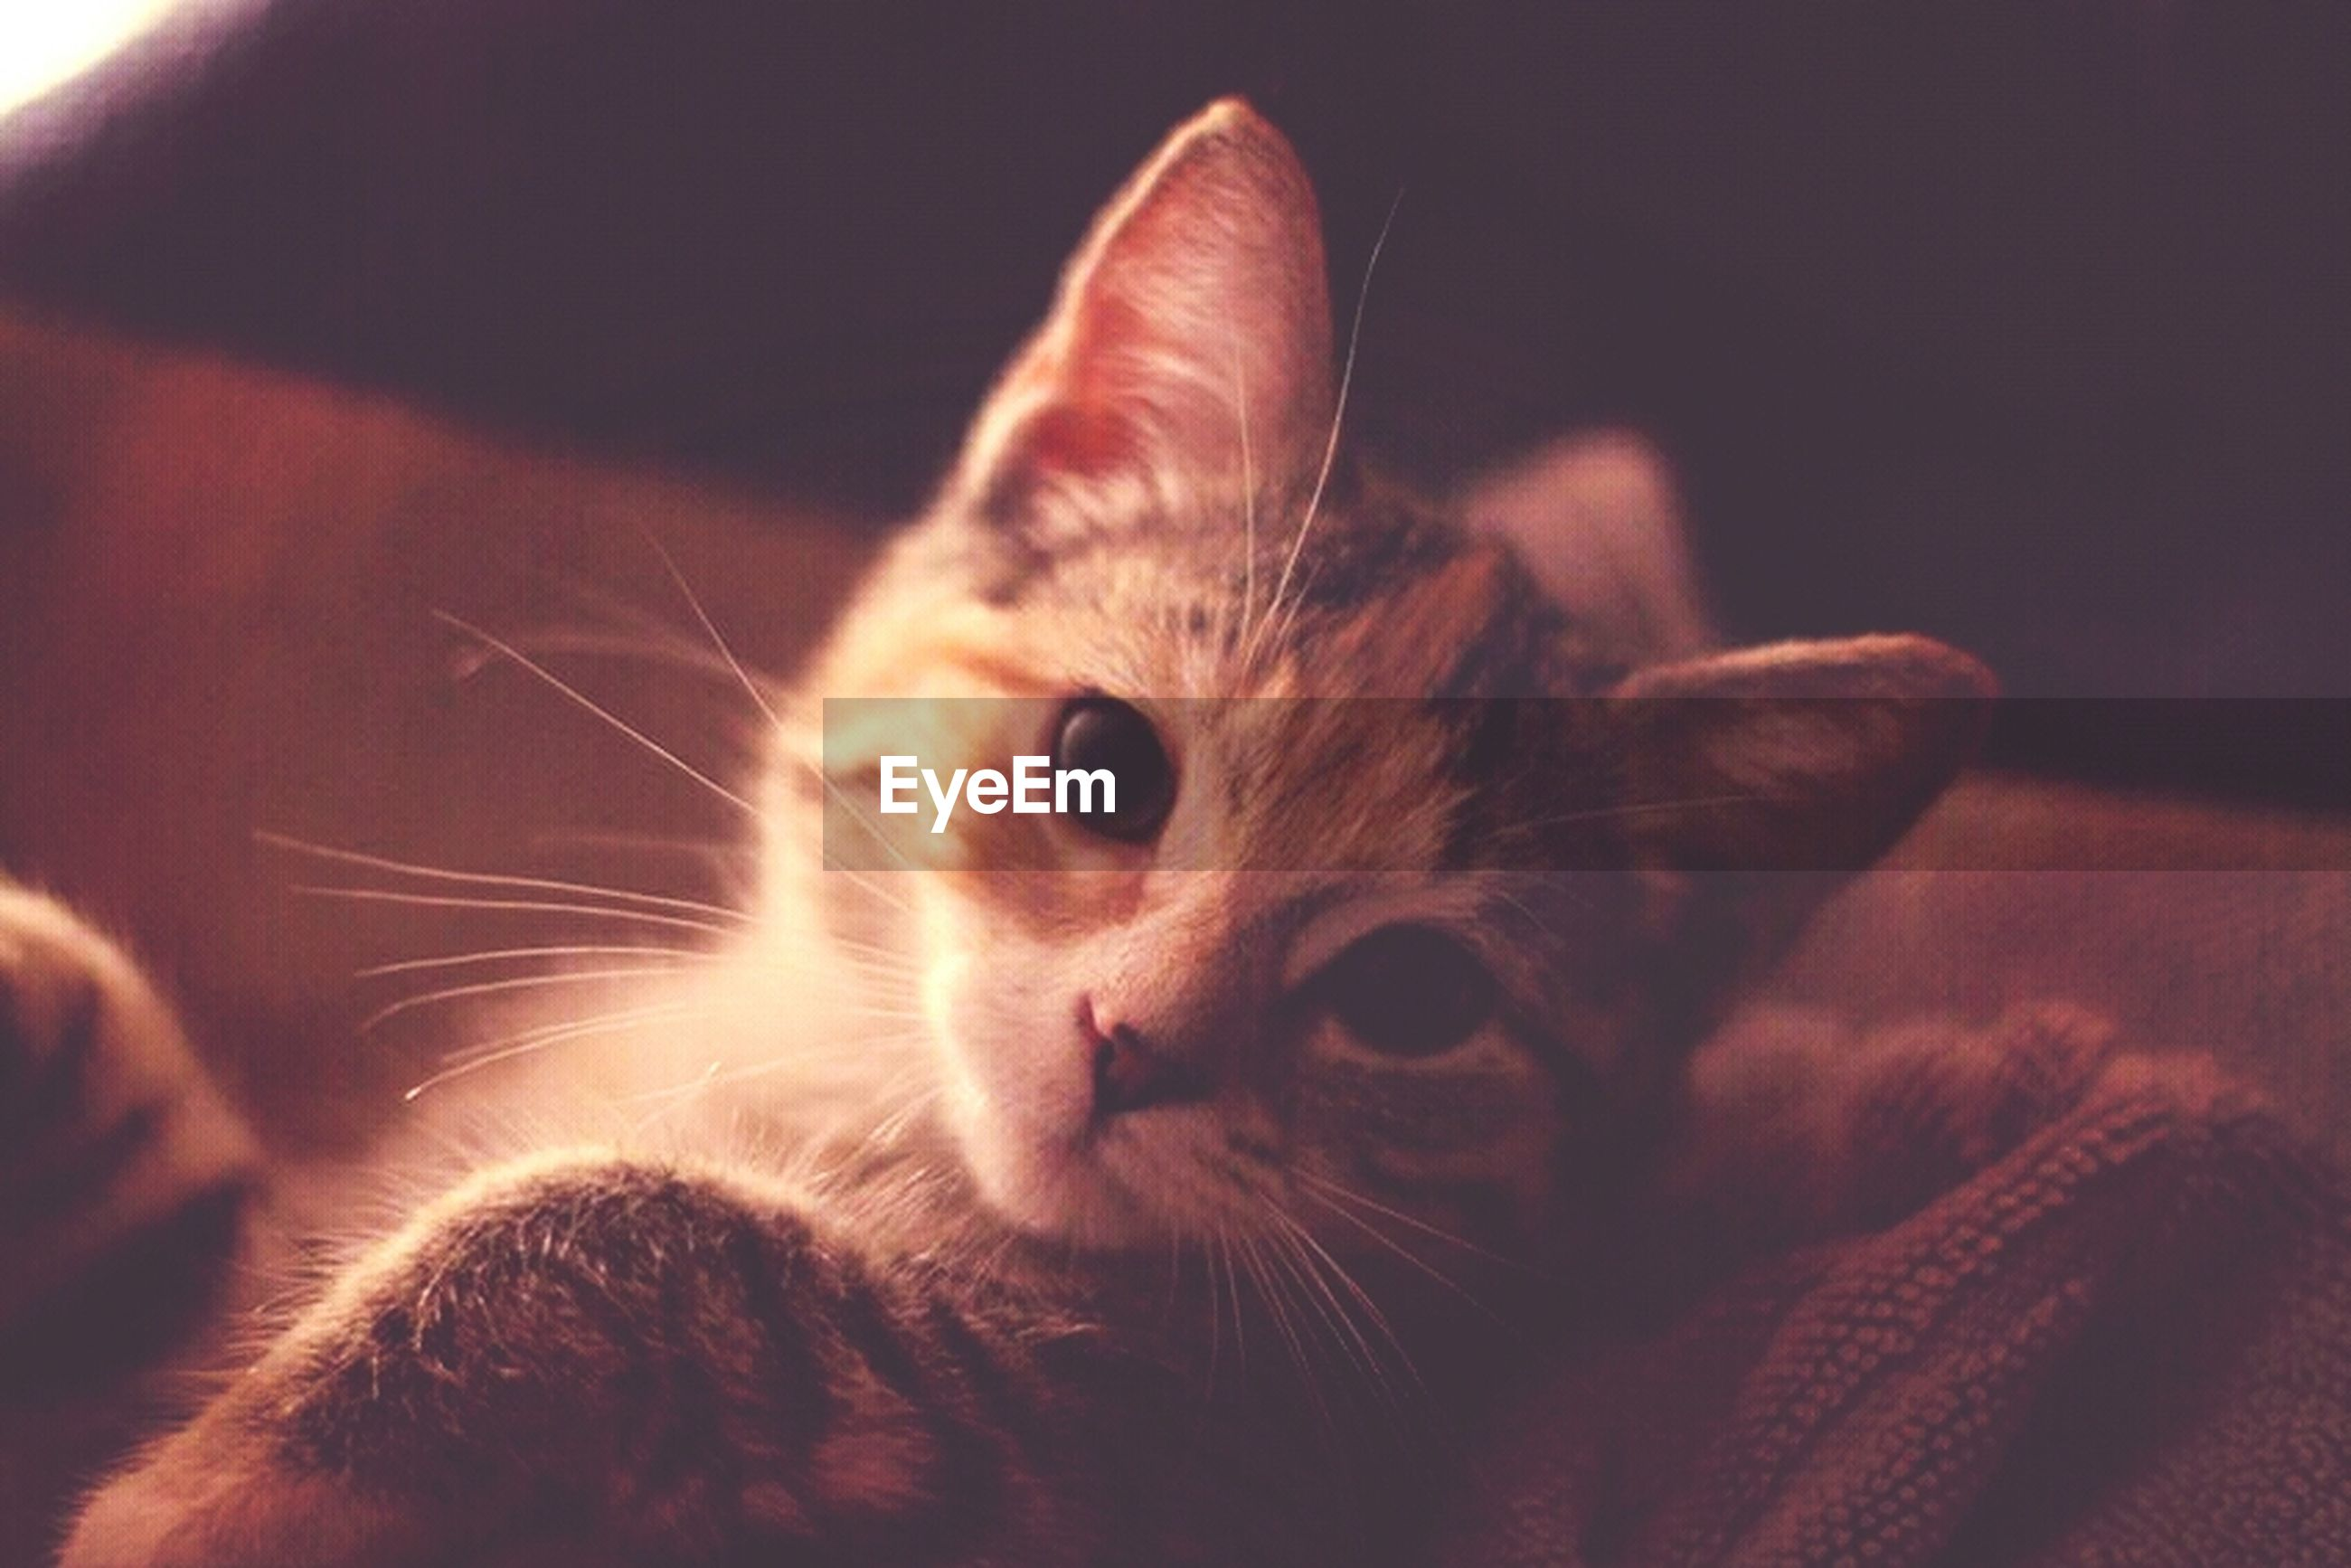 pets, domestic cat, animal themes, one animal, domestic animals, cat, mammal, feline, indoors, whisker, portrait, close-up, looking at camera, animal head, relaxation, animal eye, alertness, home interior, staring